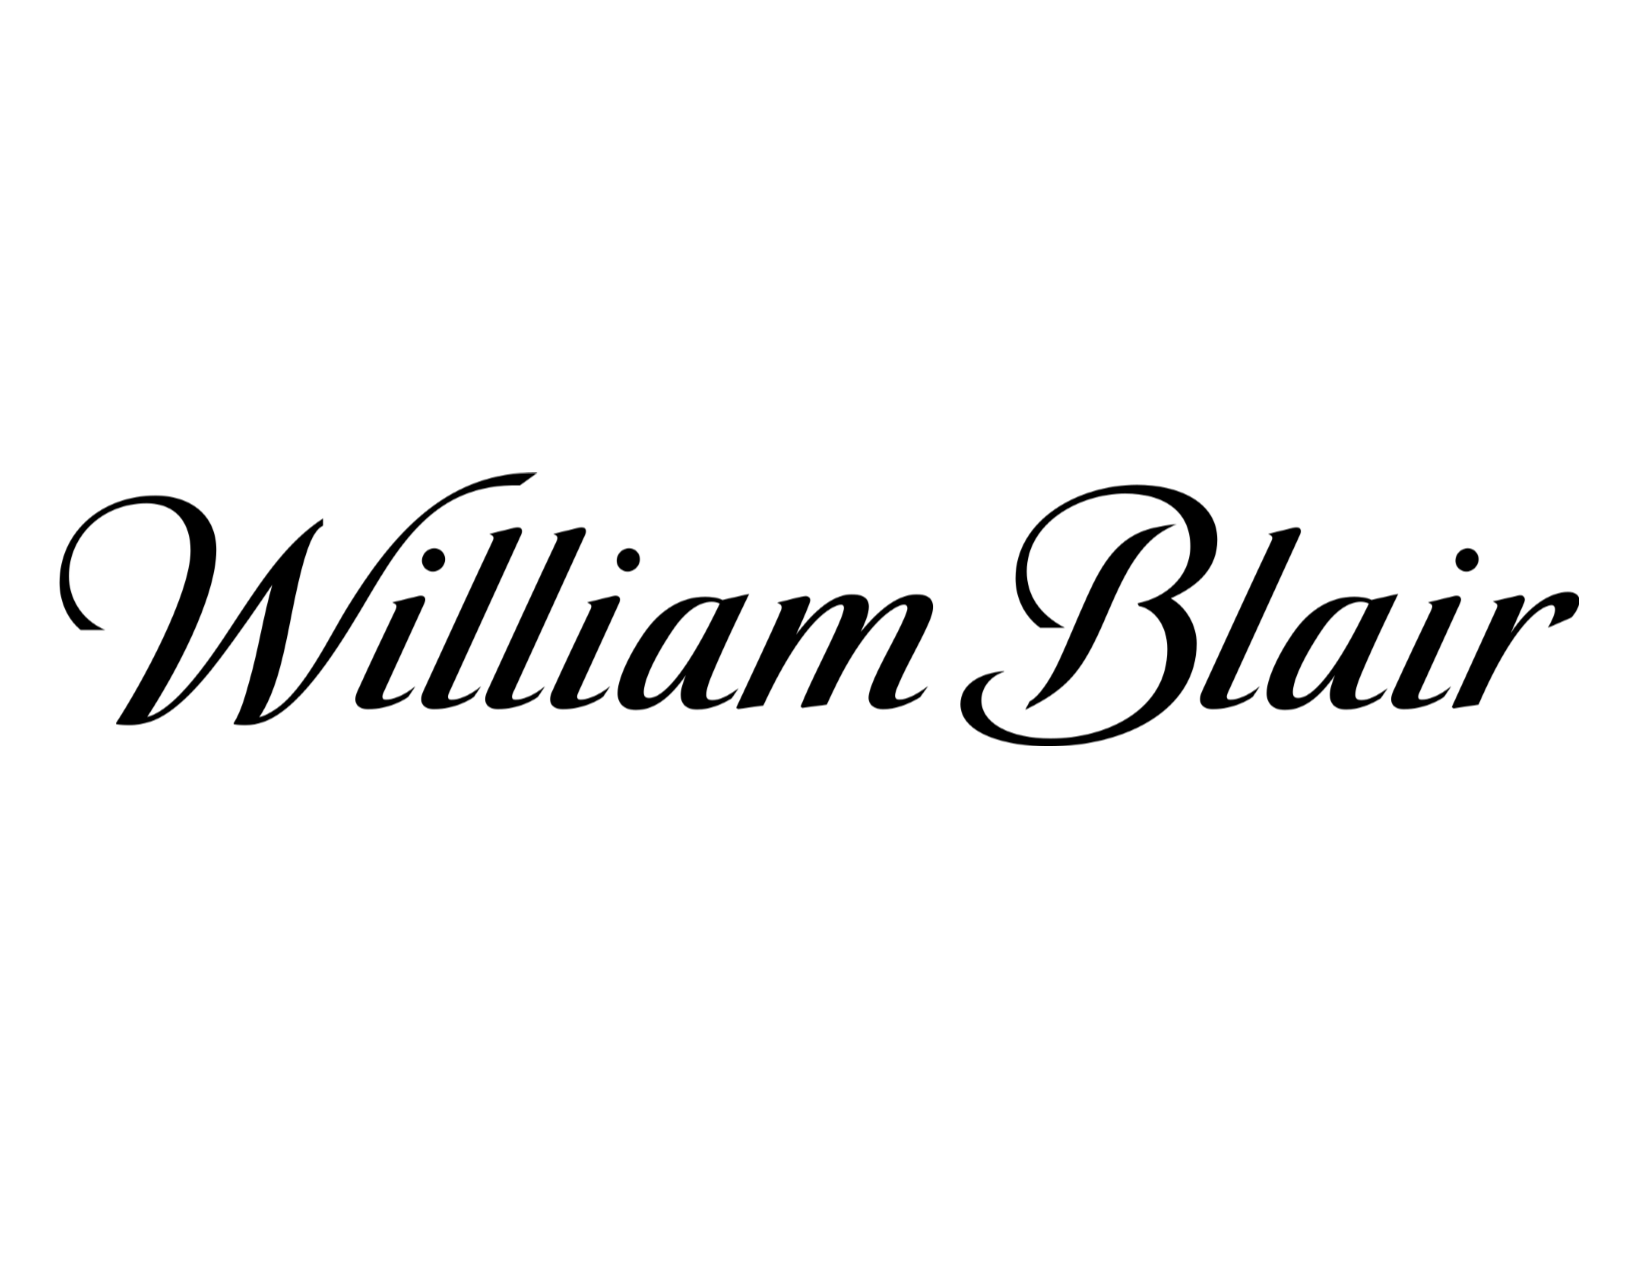 William Blair logo.png